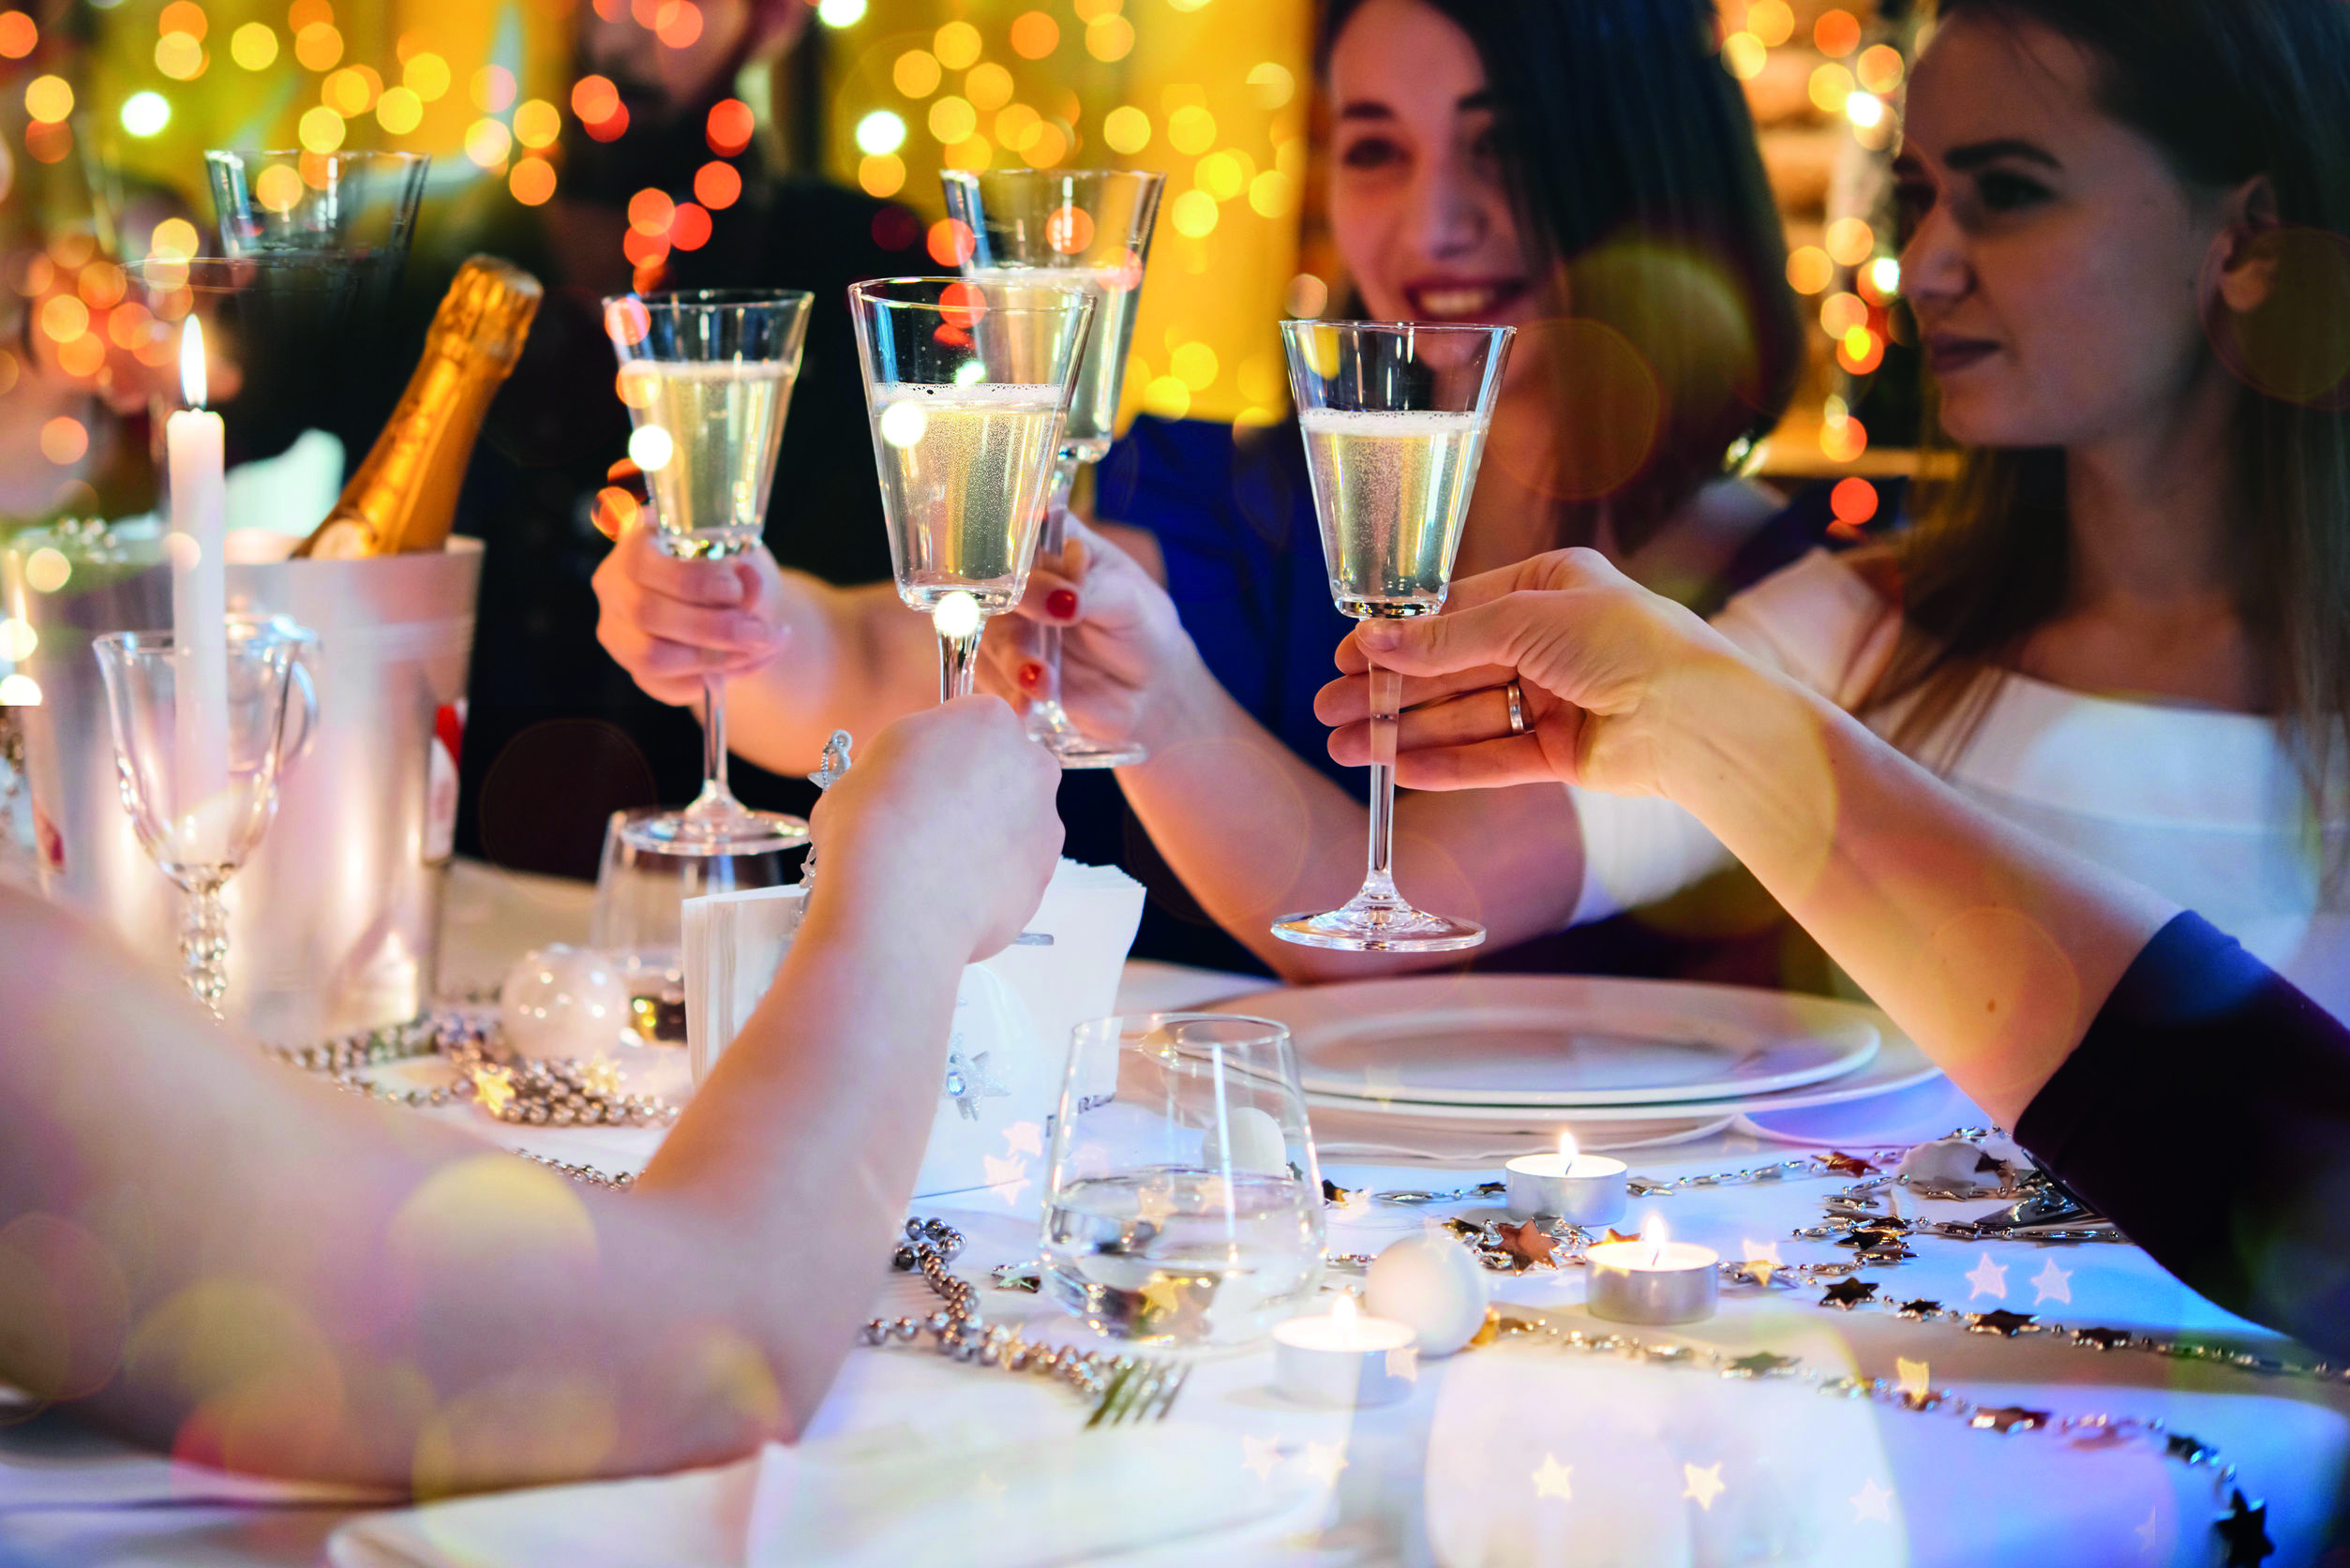 Festive group of people enjoying dinner and saying cheers